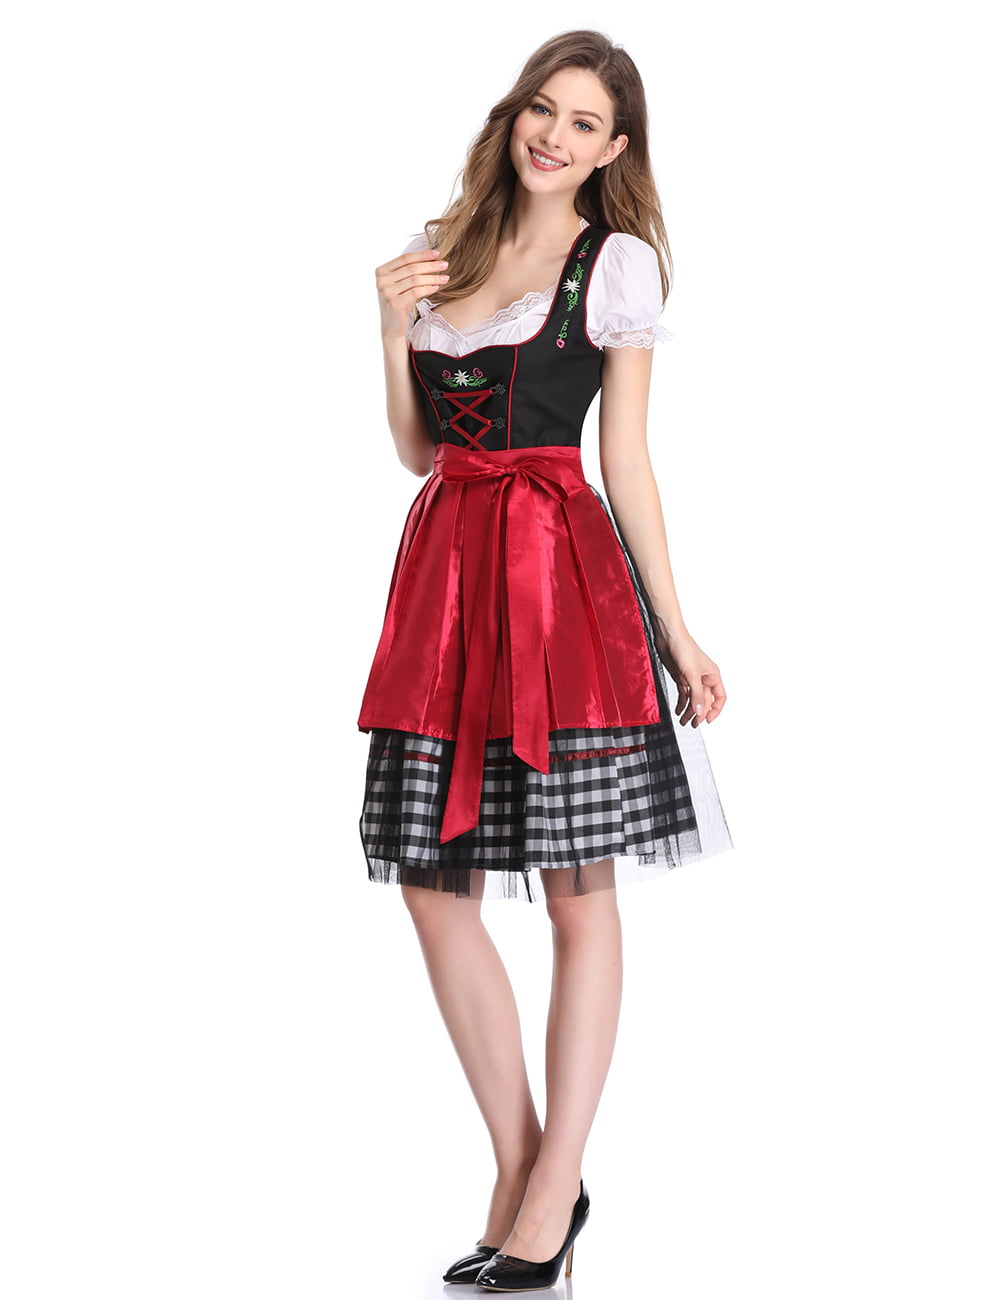 women's german dirndl dress 3 pieces traditional bavarian